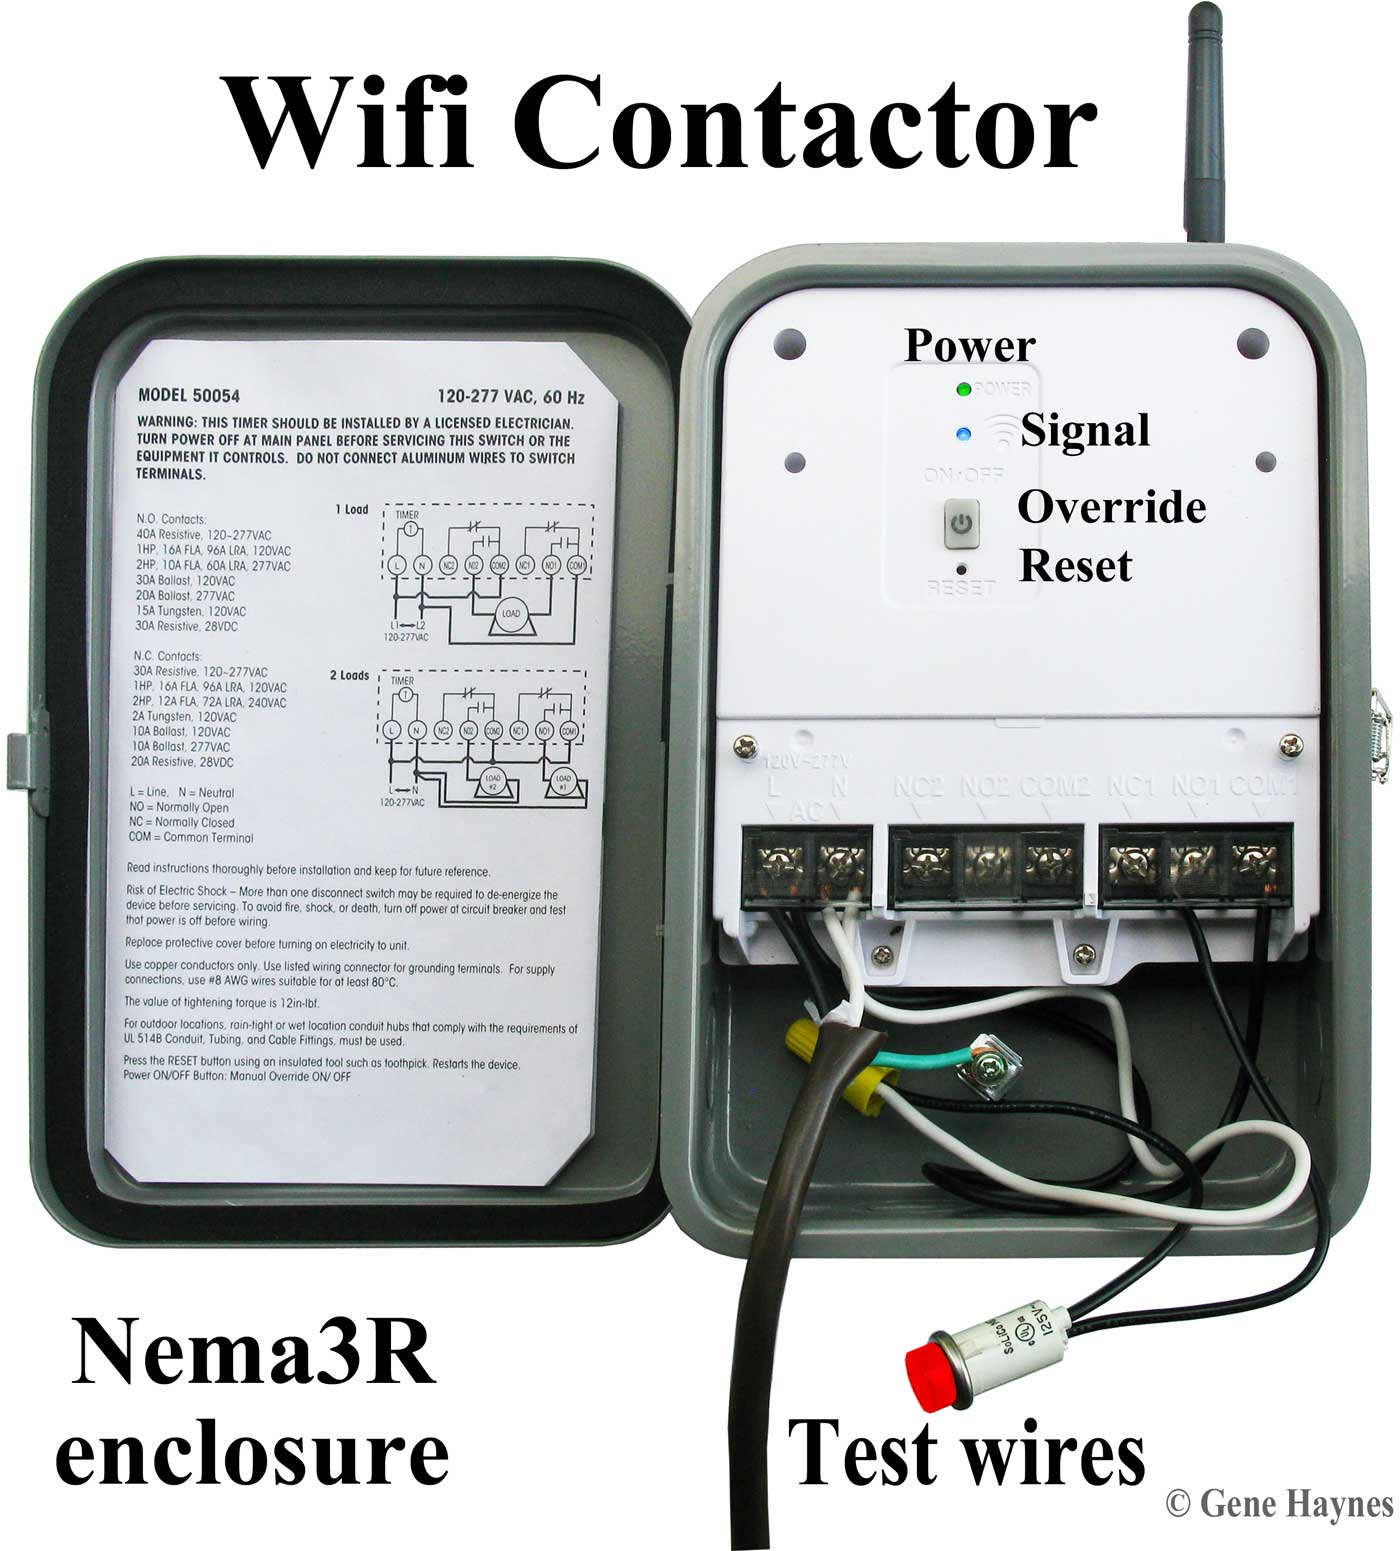 How To Wire Wifi Contactor 240 Vac Wiring Larger Image